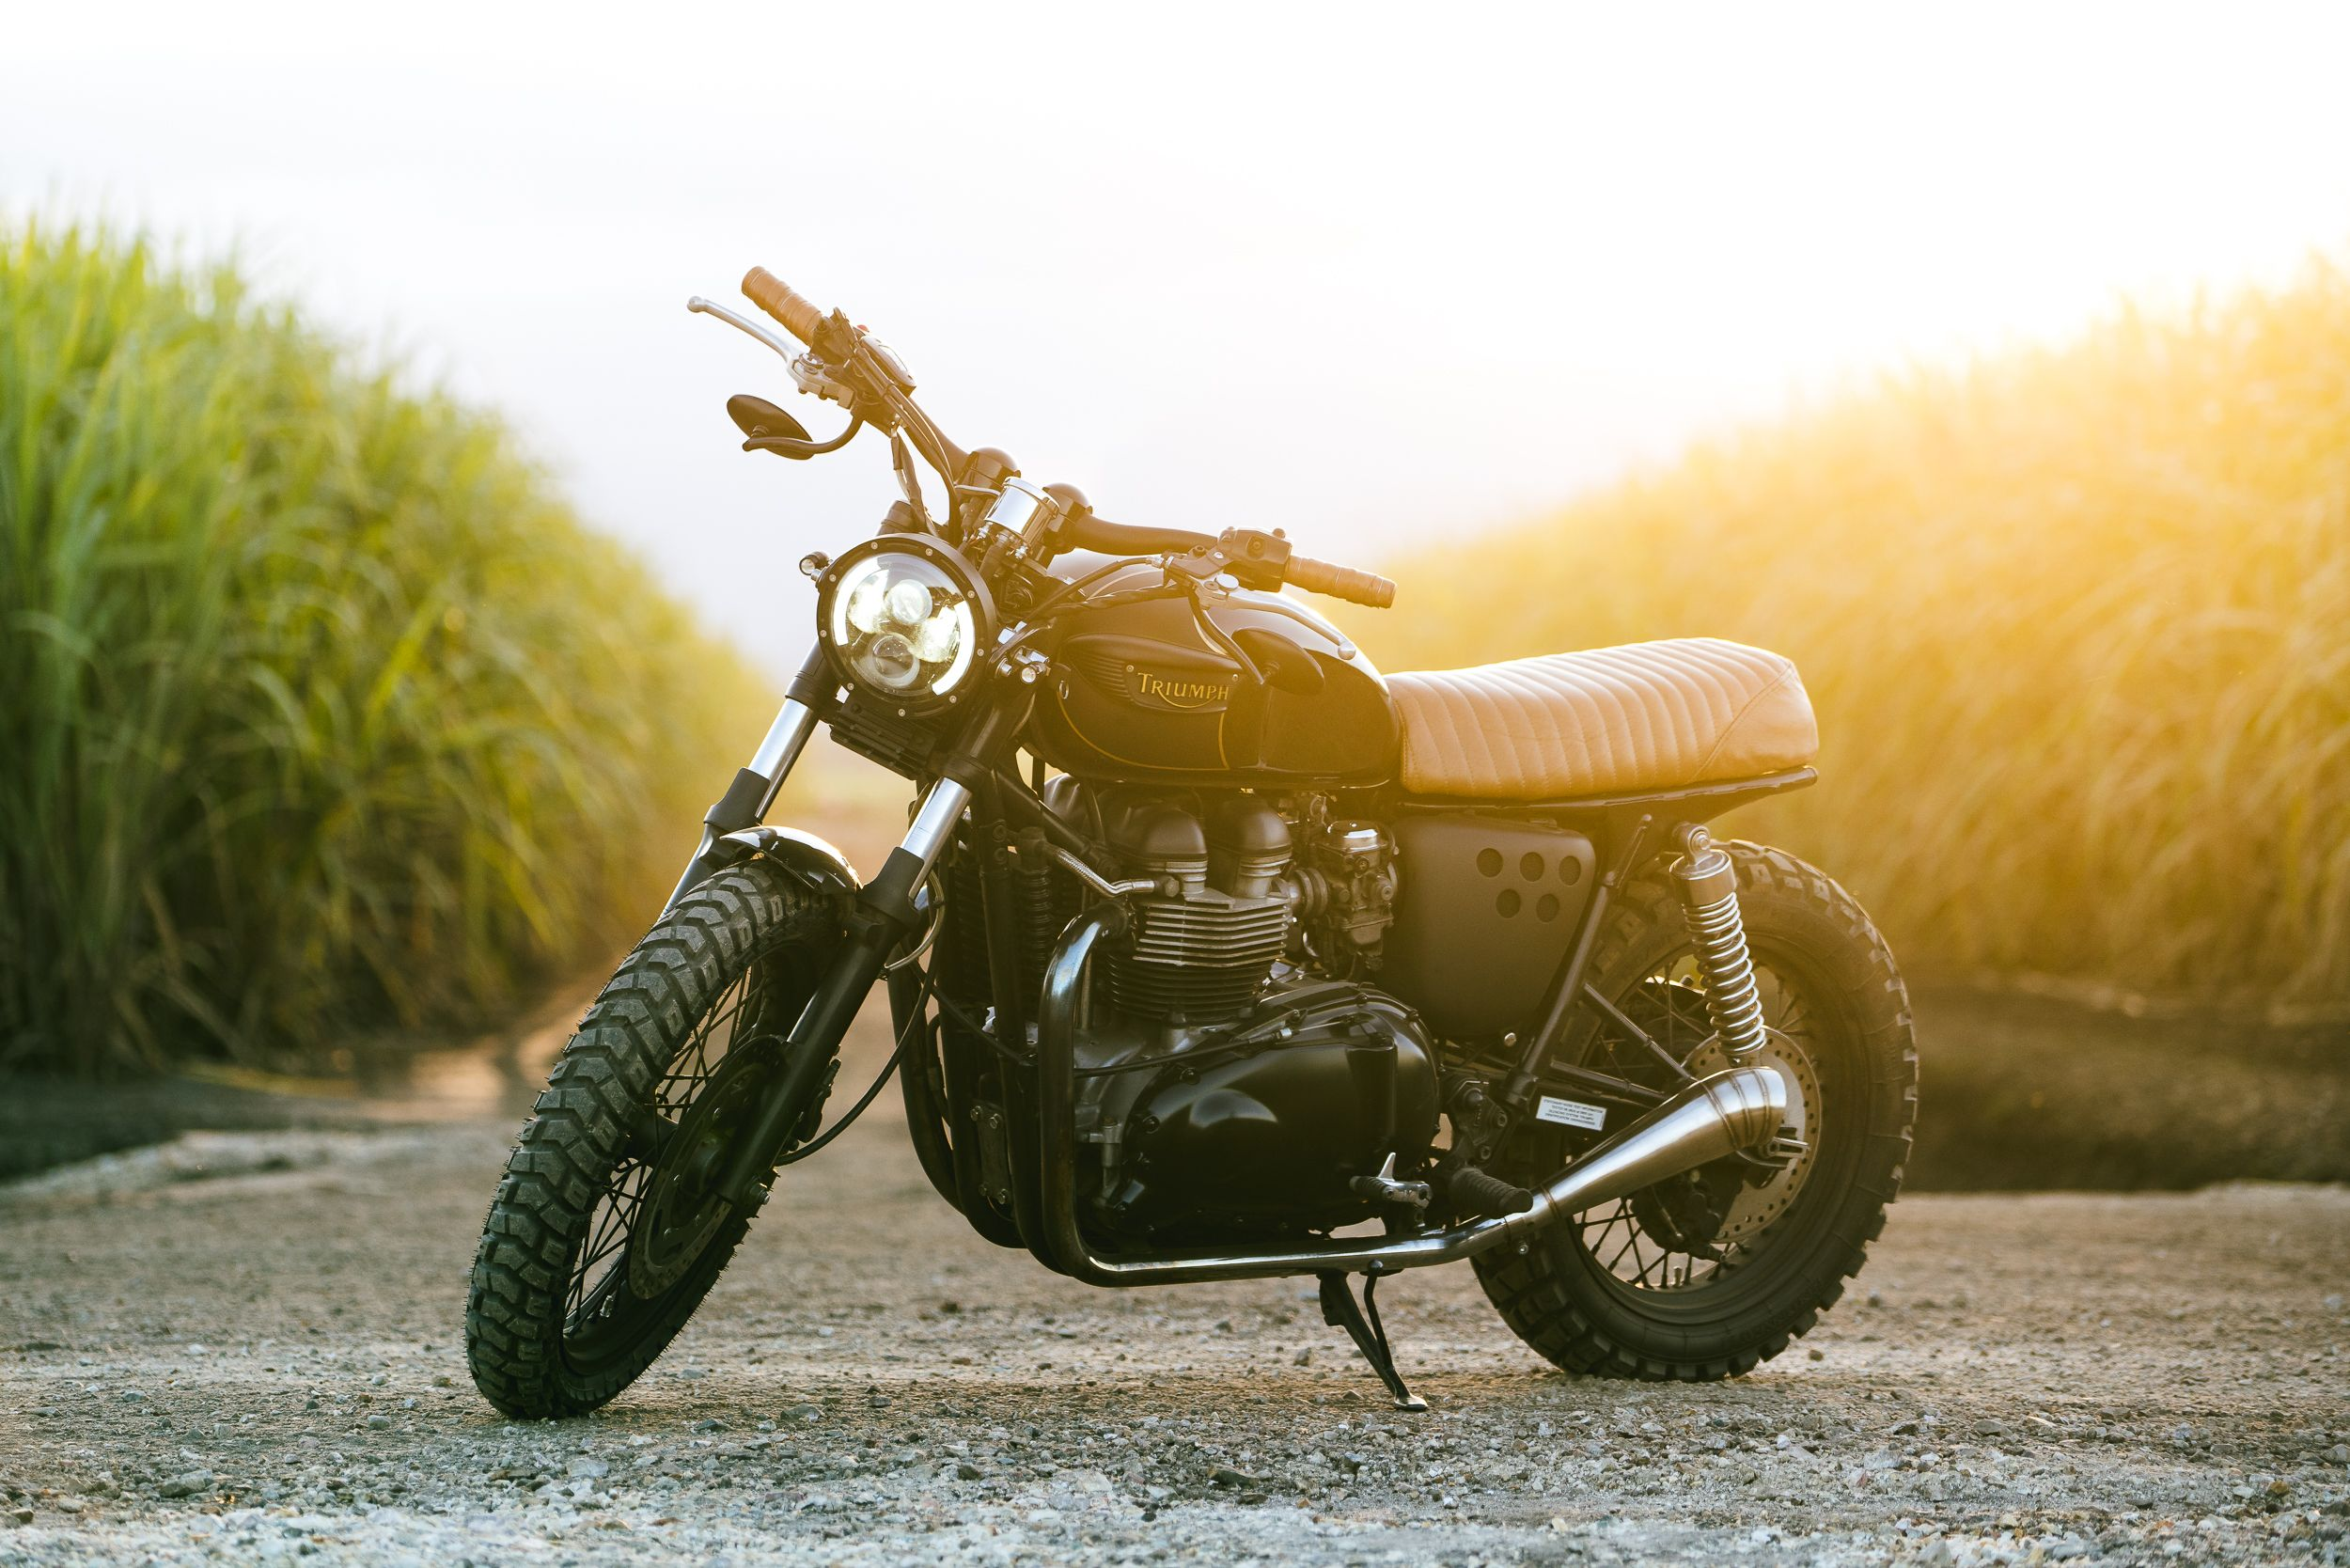 triumph-cafe-racer-field-2